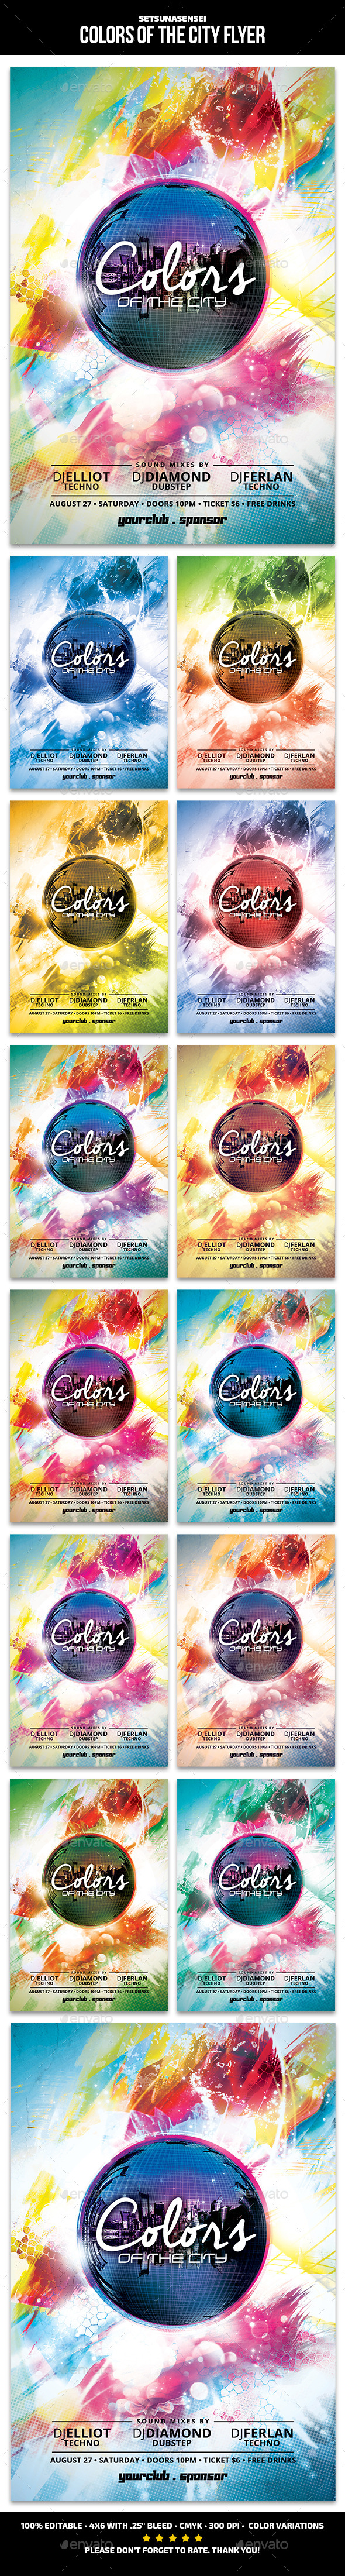 Colors of the City Flyer - Clubs & Parties Events